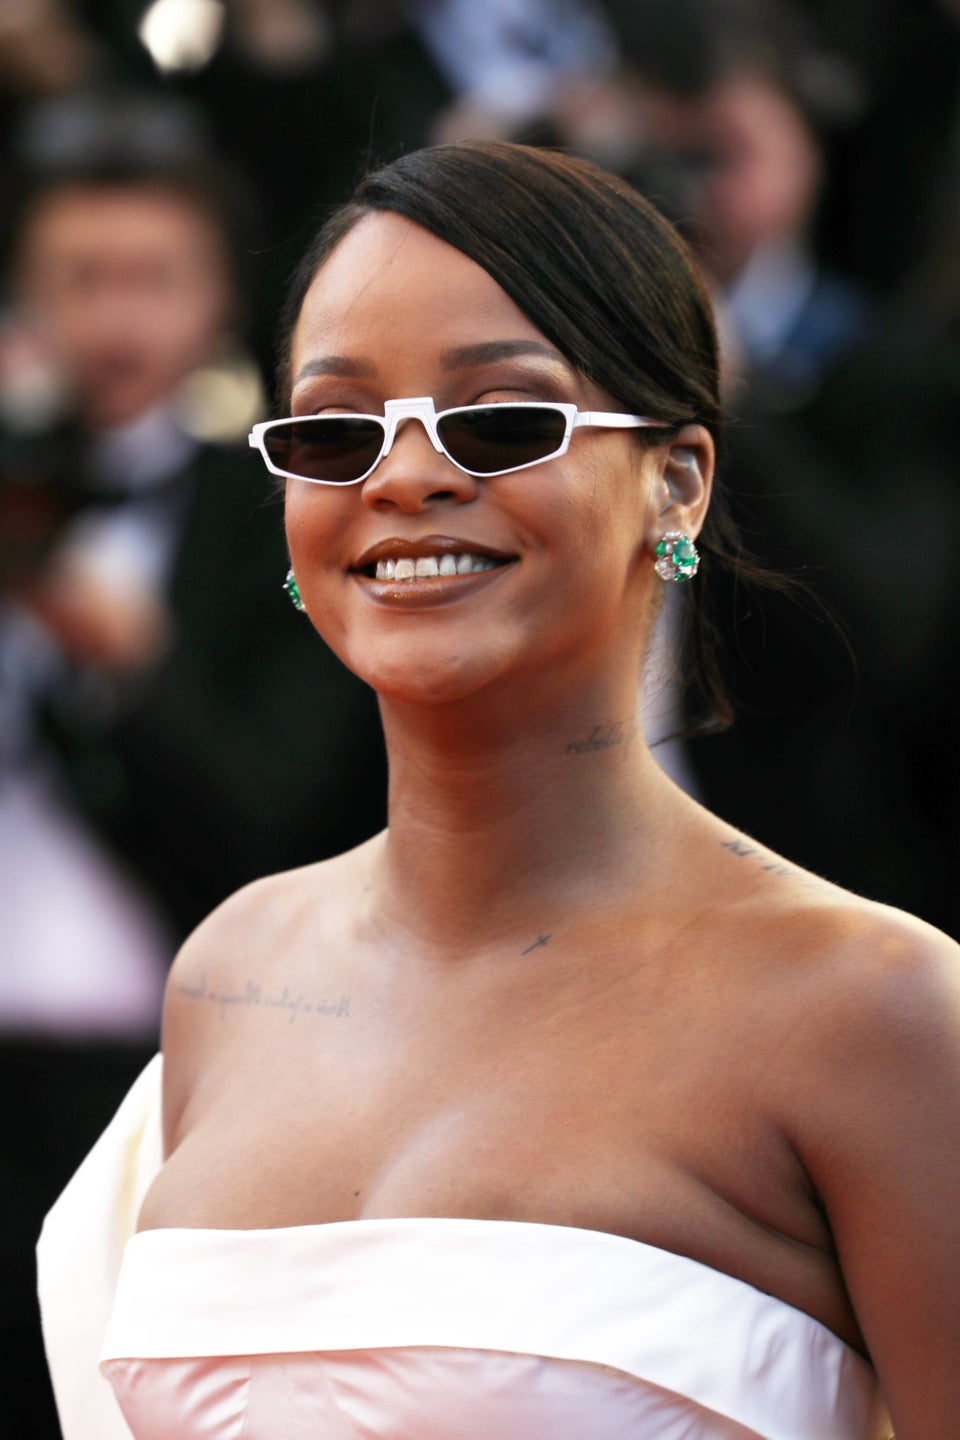 Rihanna Urges World Leaders To Fund Education In Series Of Tweets